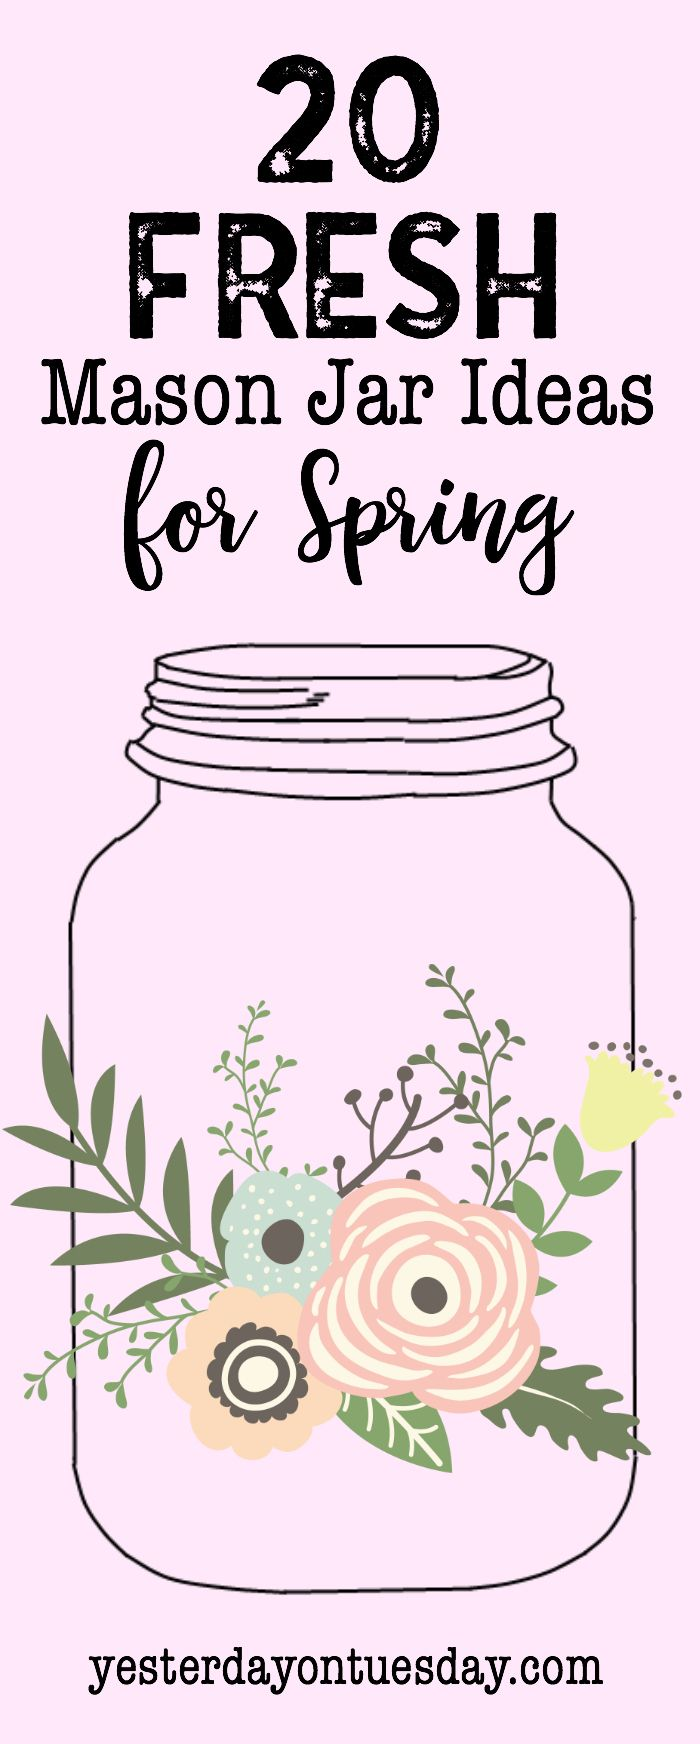 20 Fresh Mason Jar Ideas for Spring: Brand new jar projects for Easter, St. Patrick's Day, the home, gift ideas and organizing hacks! mason jars | spring | easter | st. patrick's day | coffee